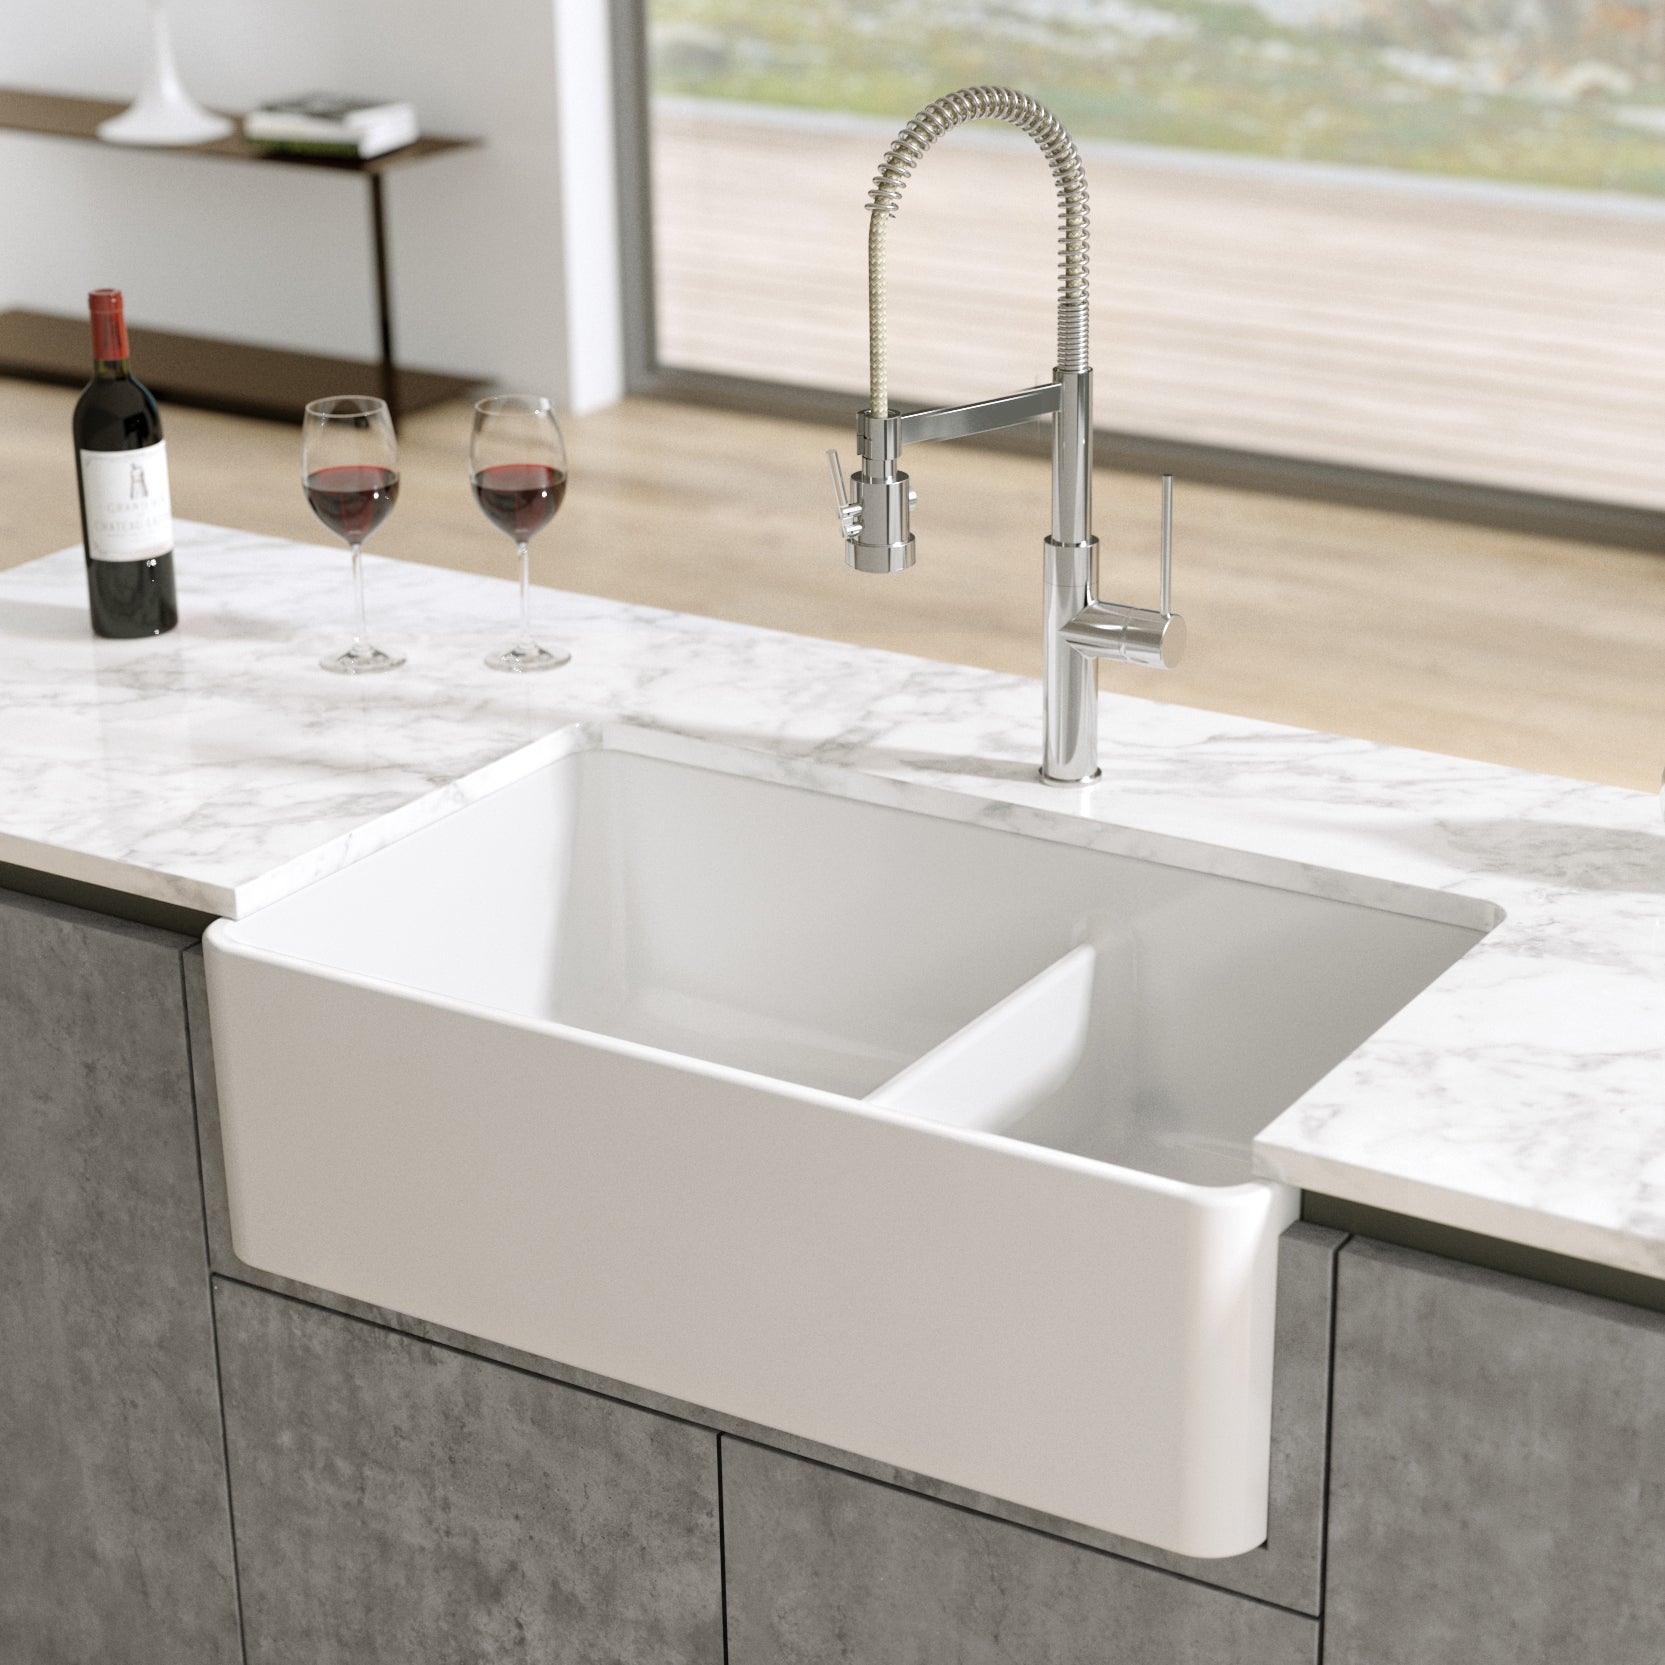 Latoscana 33 Fireclay Farmhouse Sink 60 40 Double Bowl White Ltd33 The Sink Boutique